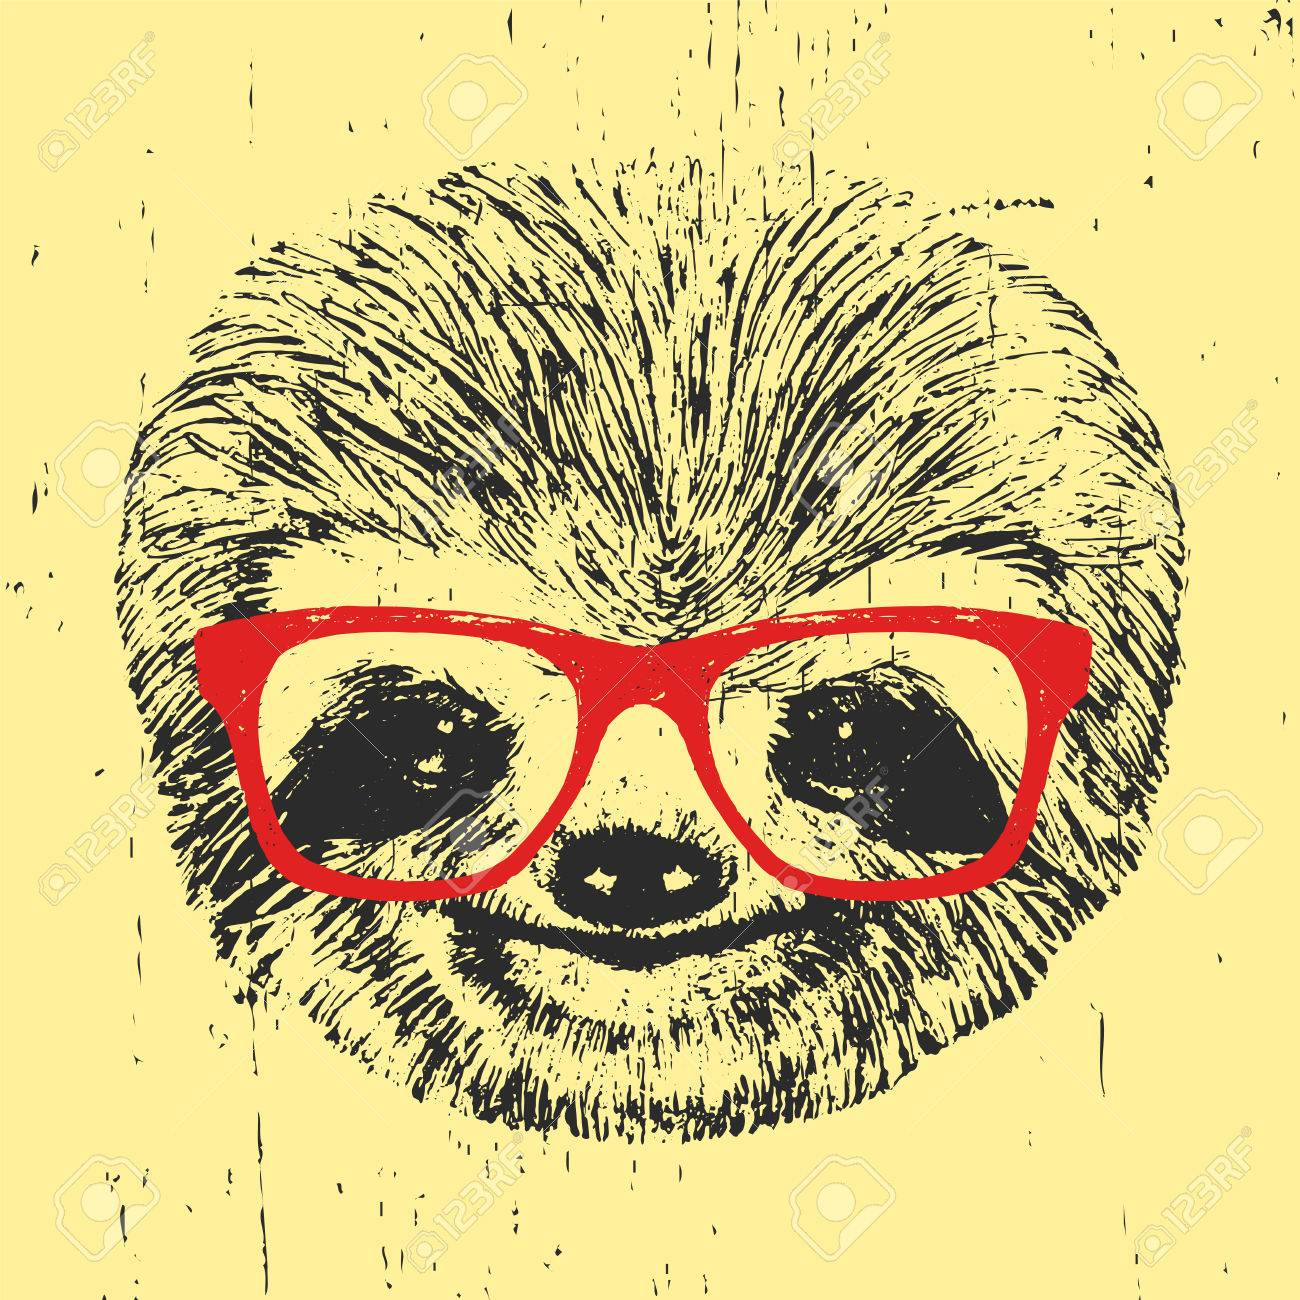 7cf7841287e Portrait of Sloth with glasses. Hand-drawn illustration. Vector. Stock  Vector -